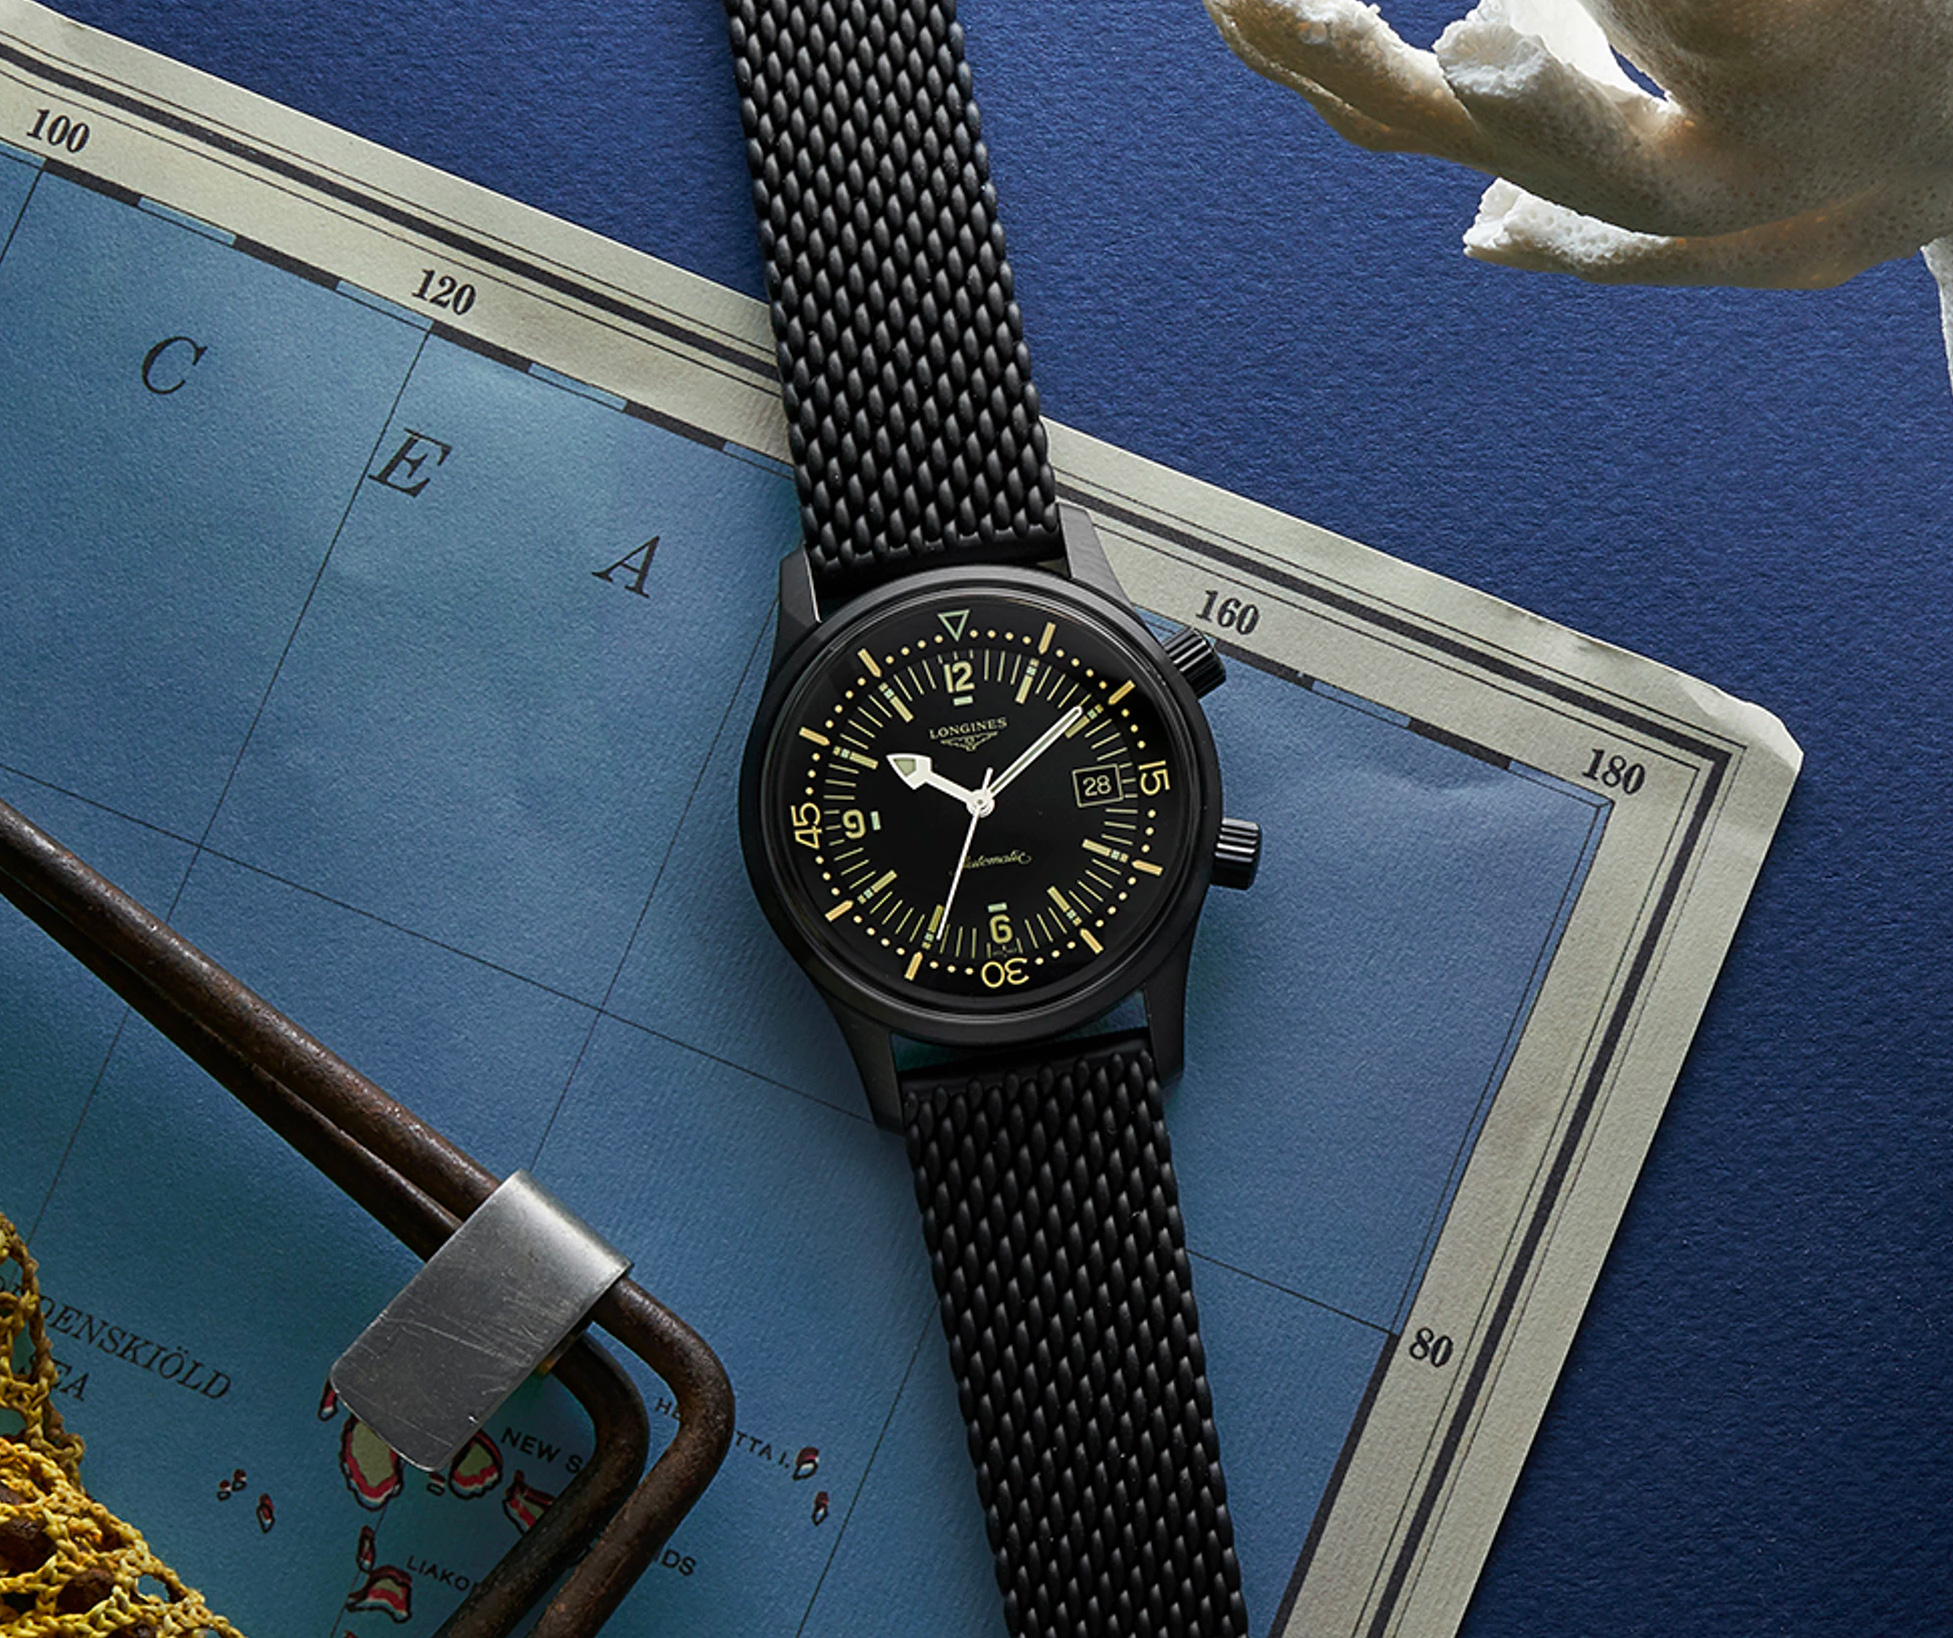 Longines Blacks Out Their Classic Dive Watch at werd.com